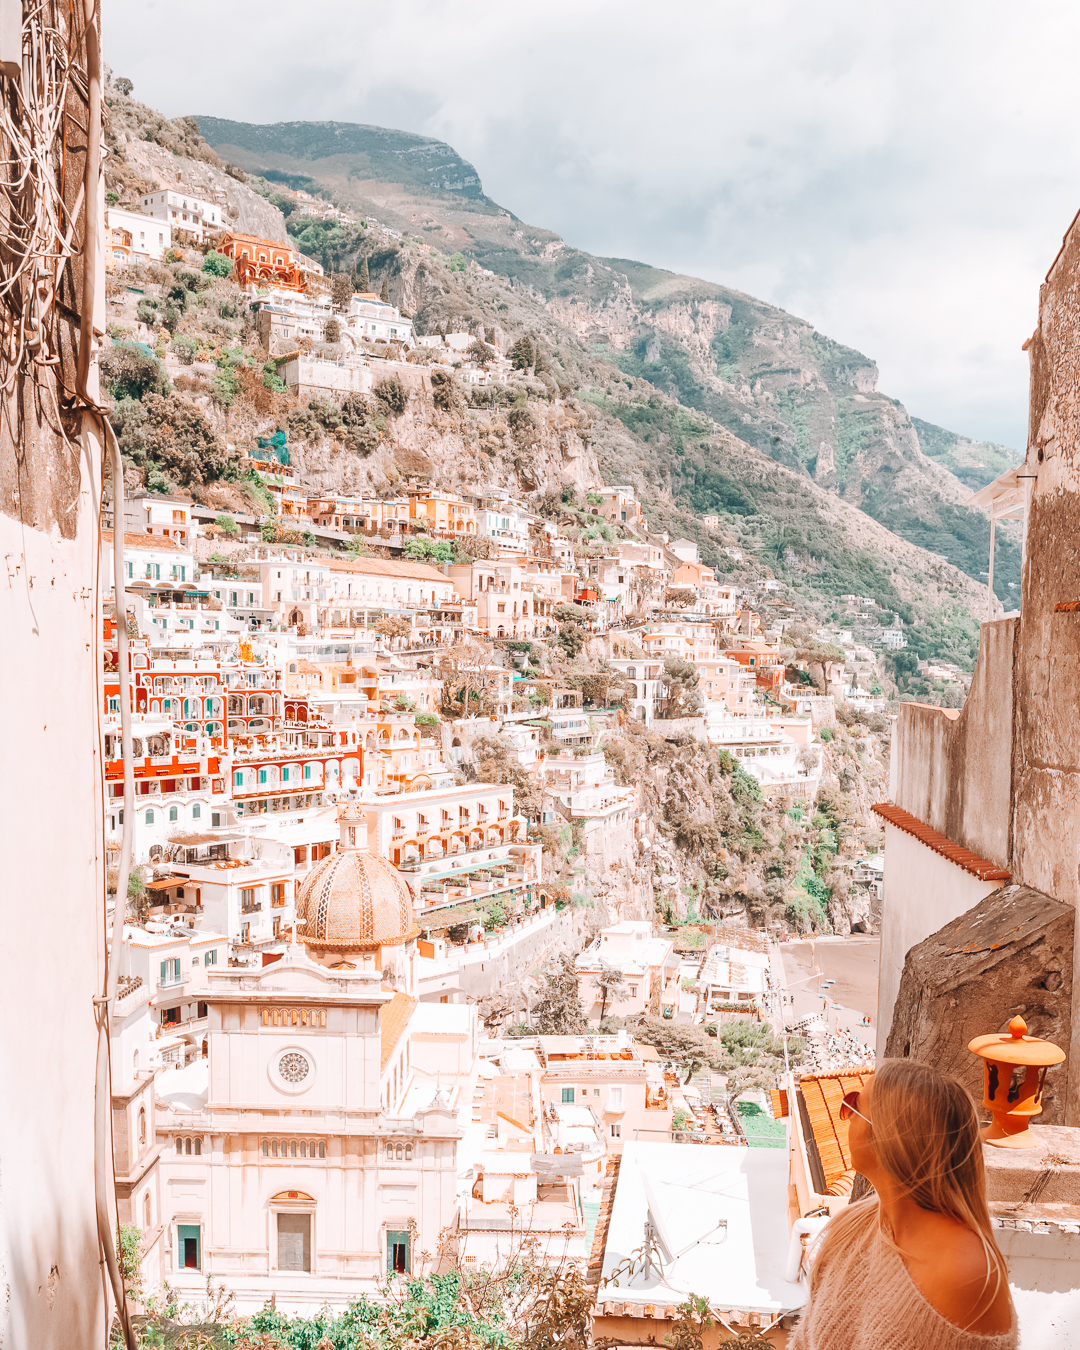 Houses, church and hills in Positano